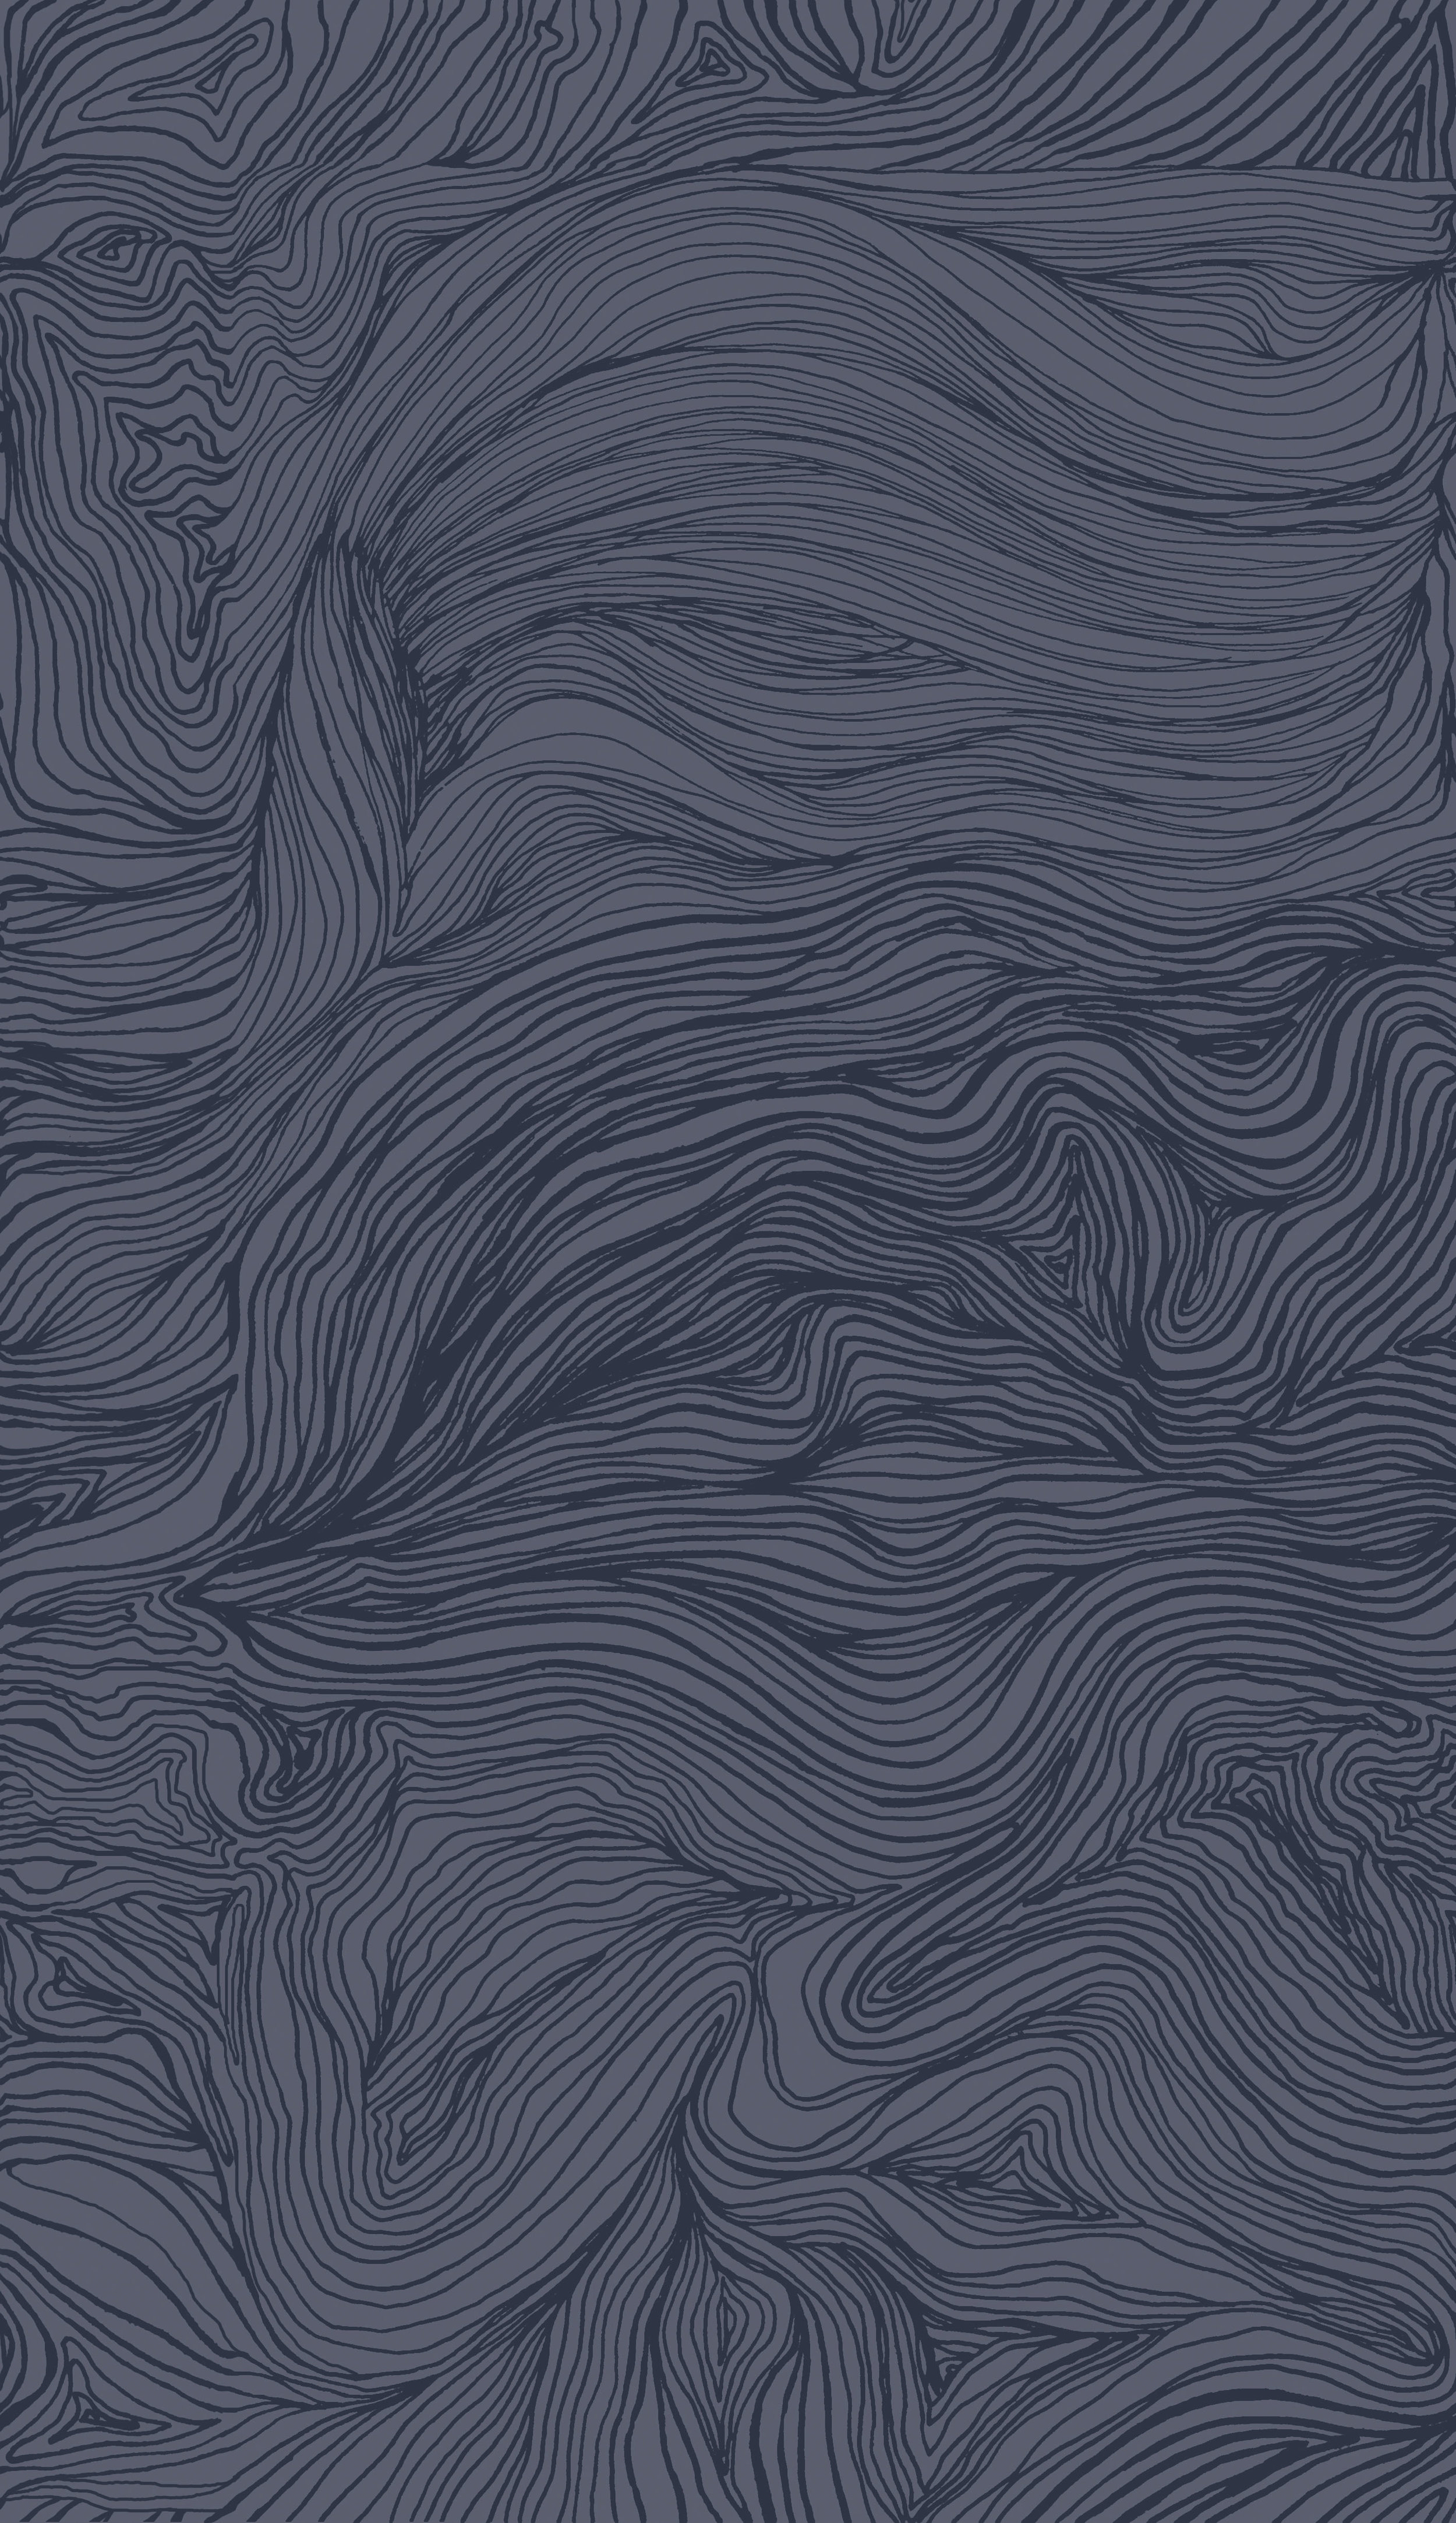 LINES-Grisaille-Navy.jpg